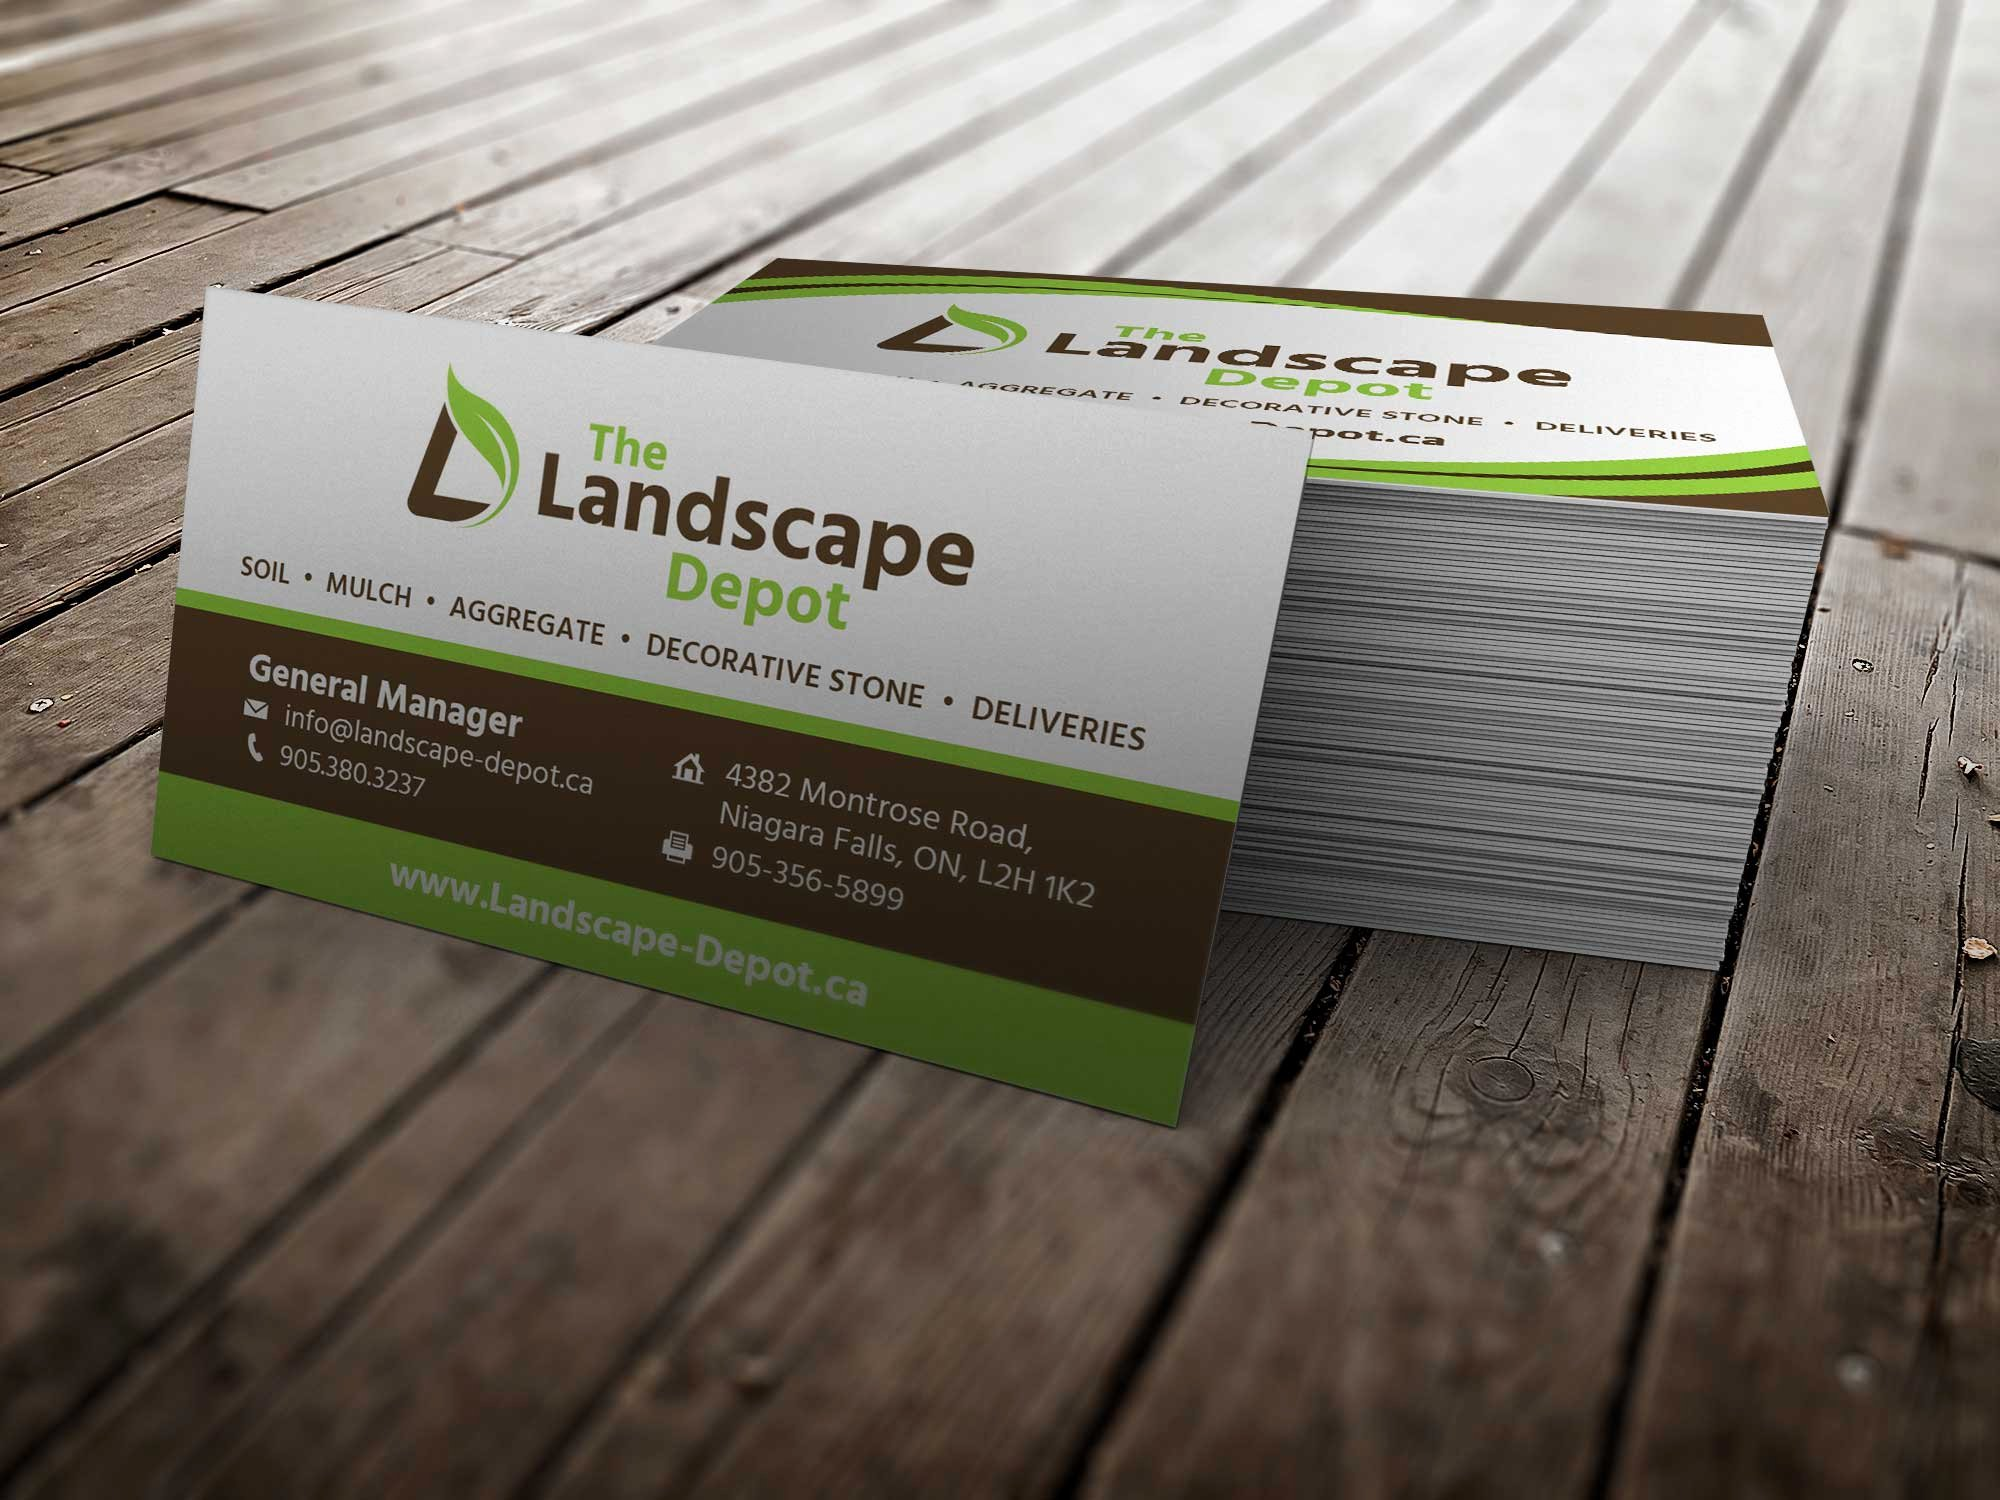 Landscaping Business Cards Ideas Lovely 19 Excellent Landscaping Business Cards S Landscape Ideas